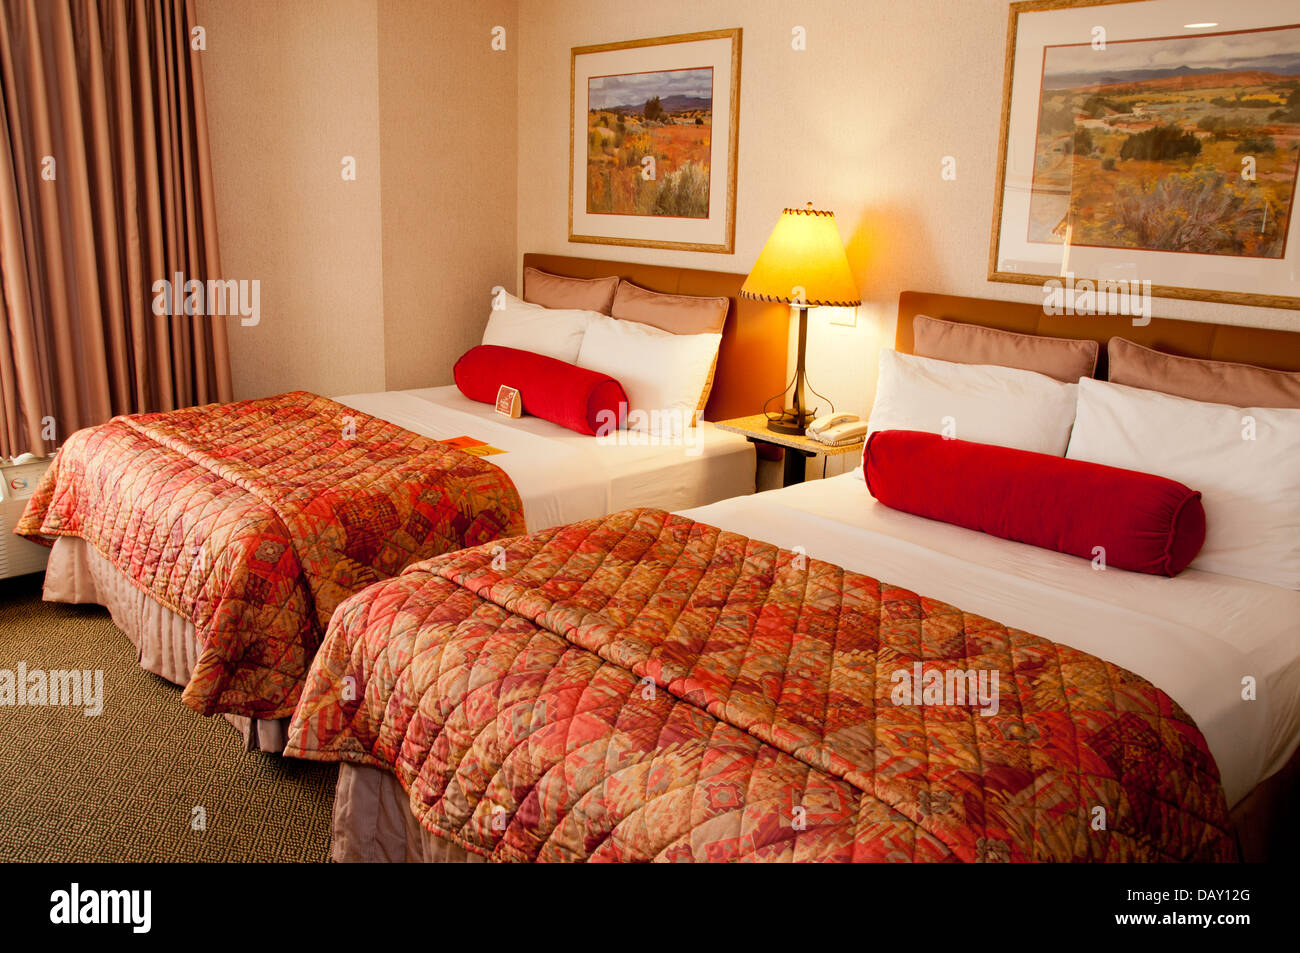 Hotel room interior - Stock Image